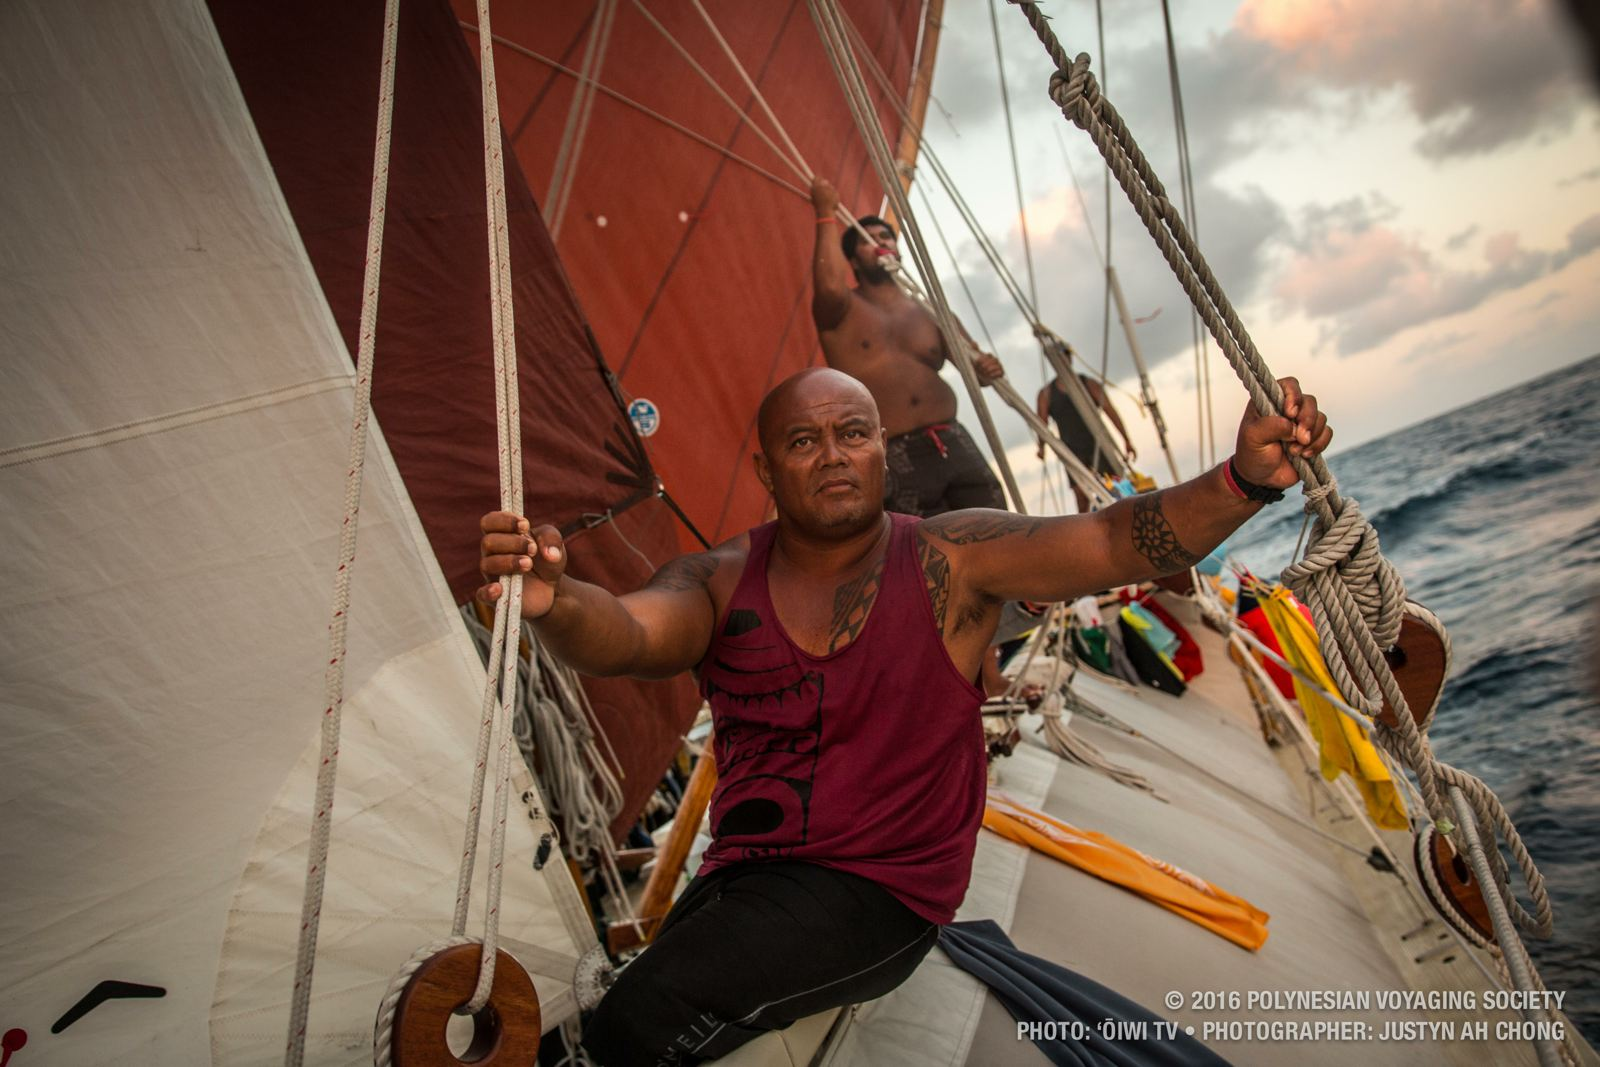 Kalani Kahalioumi, Hokule'a watch captain, on Hokule'a en route to St. John US Virgin Islands.